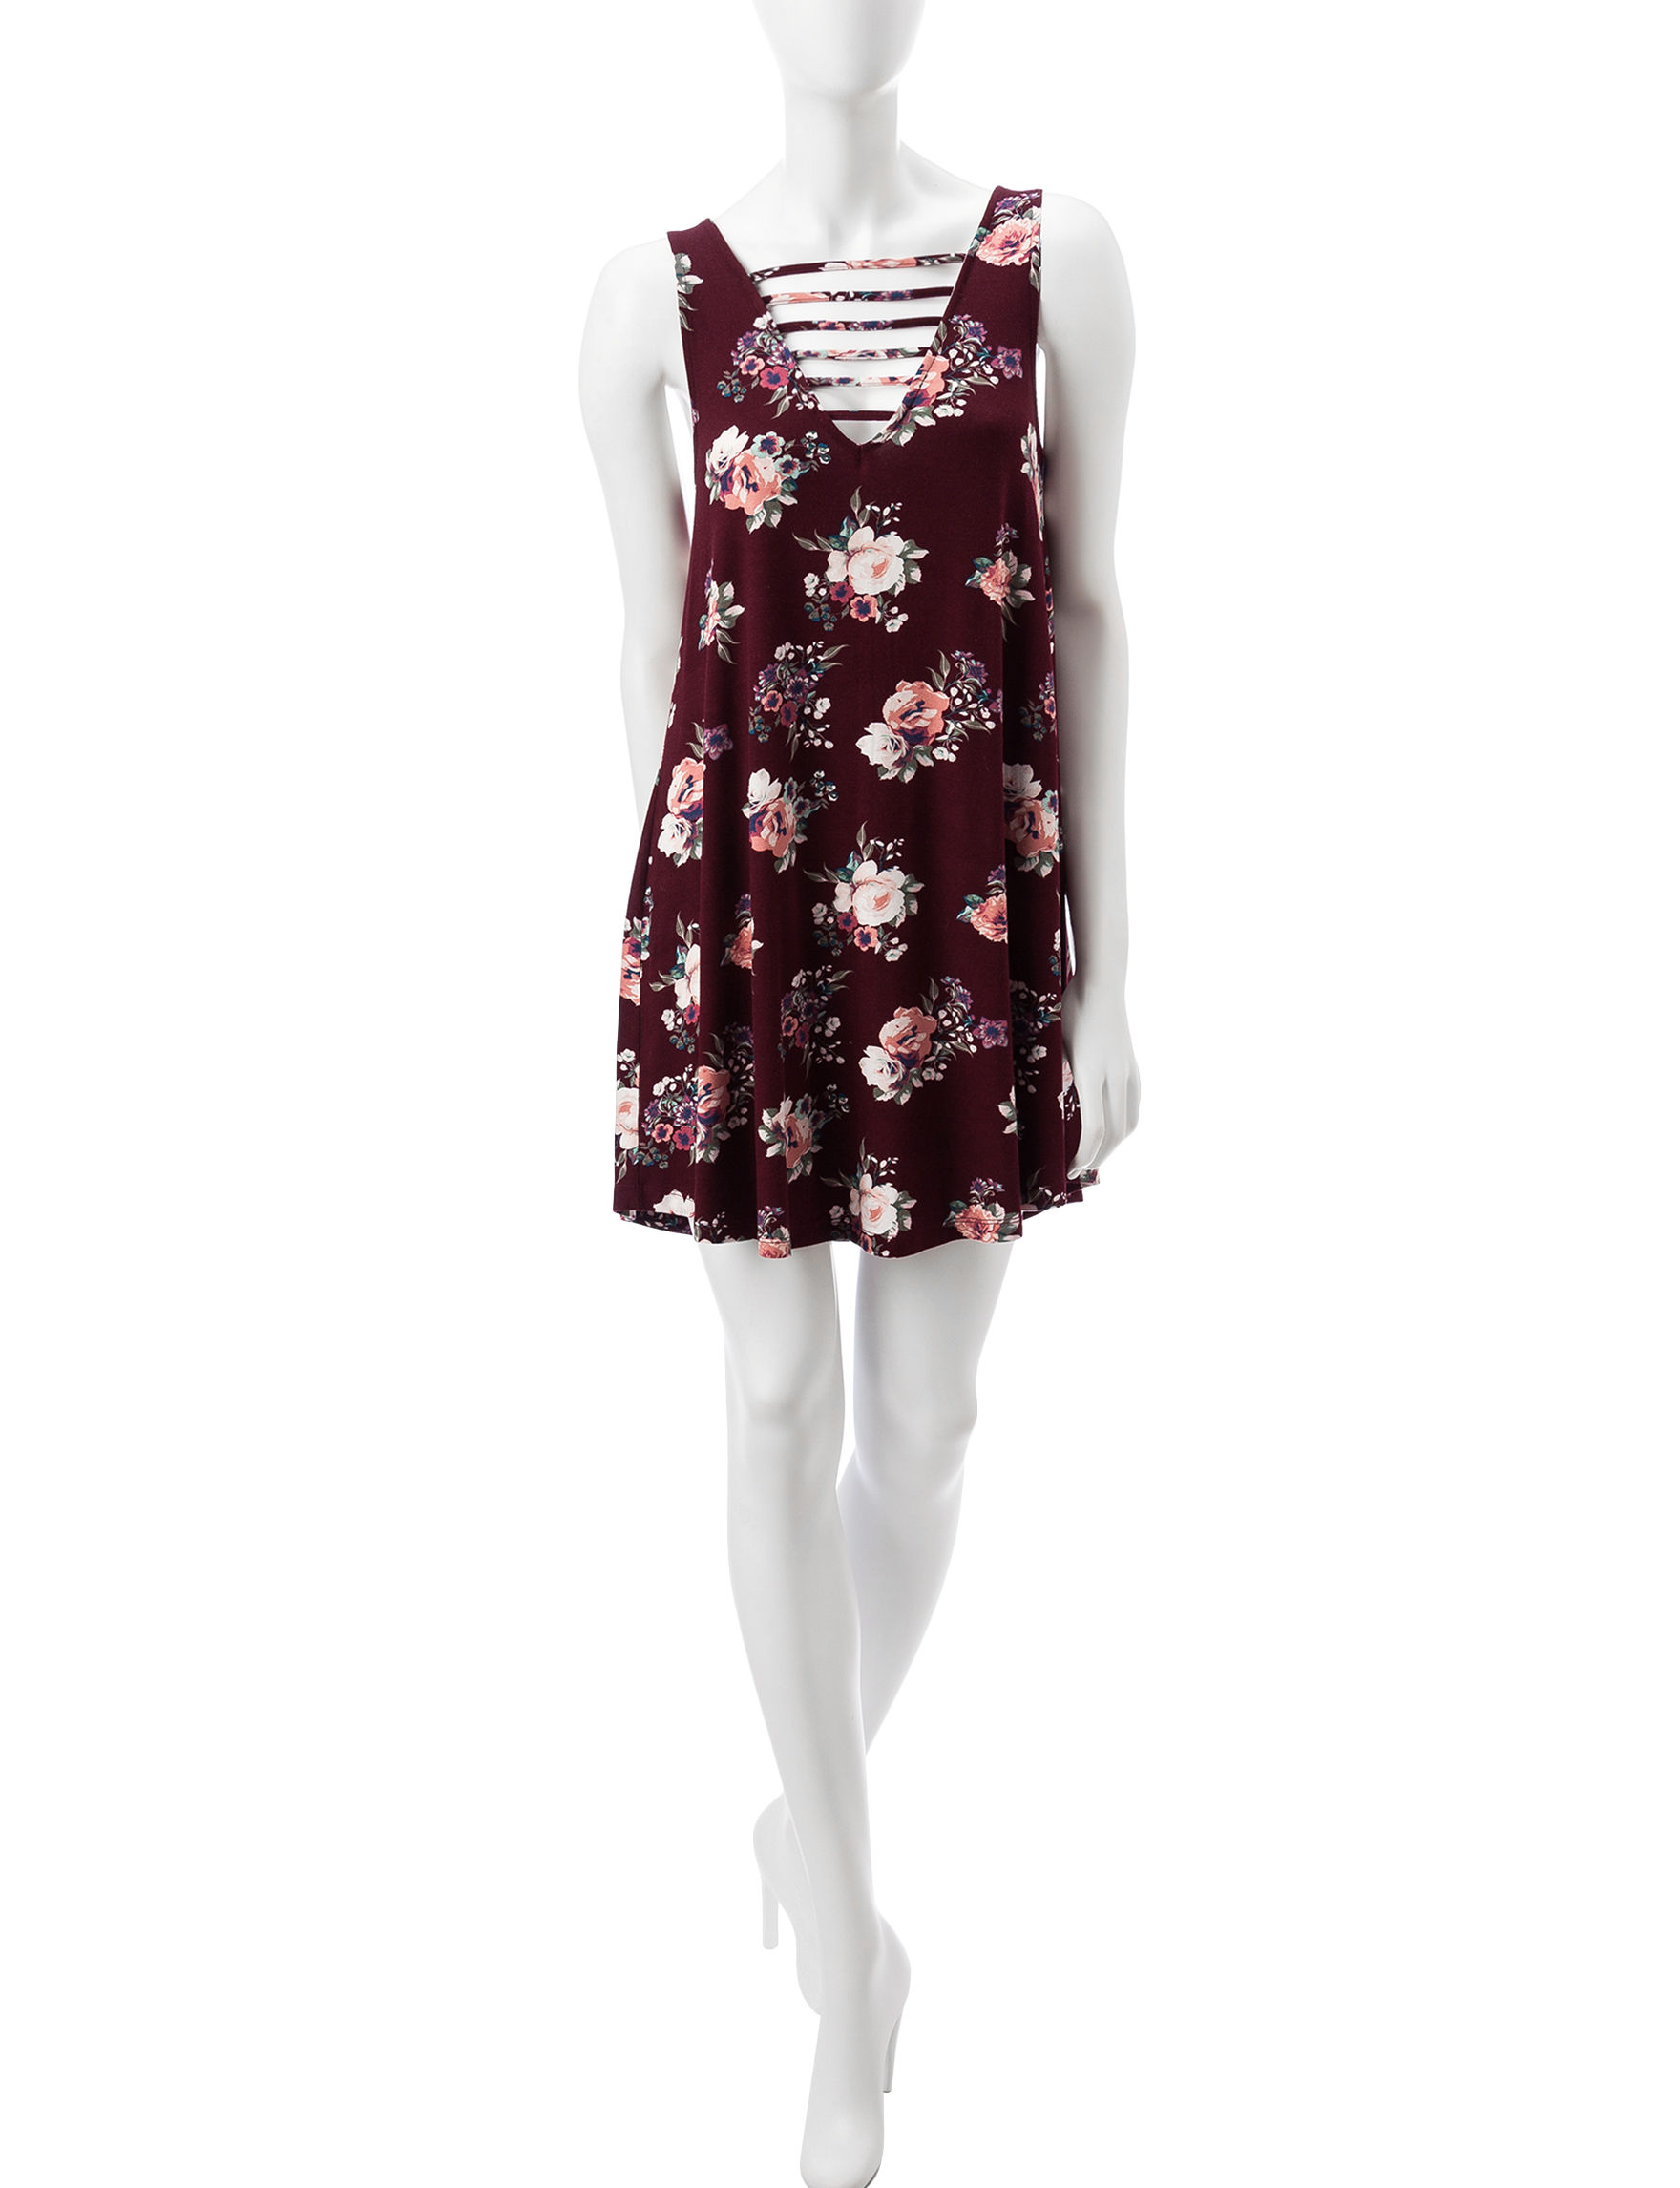 Wishful Park Burgundy Everyday & Casual Shift Dresses